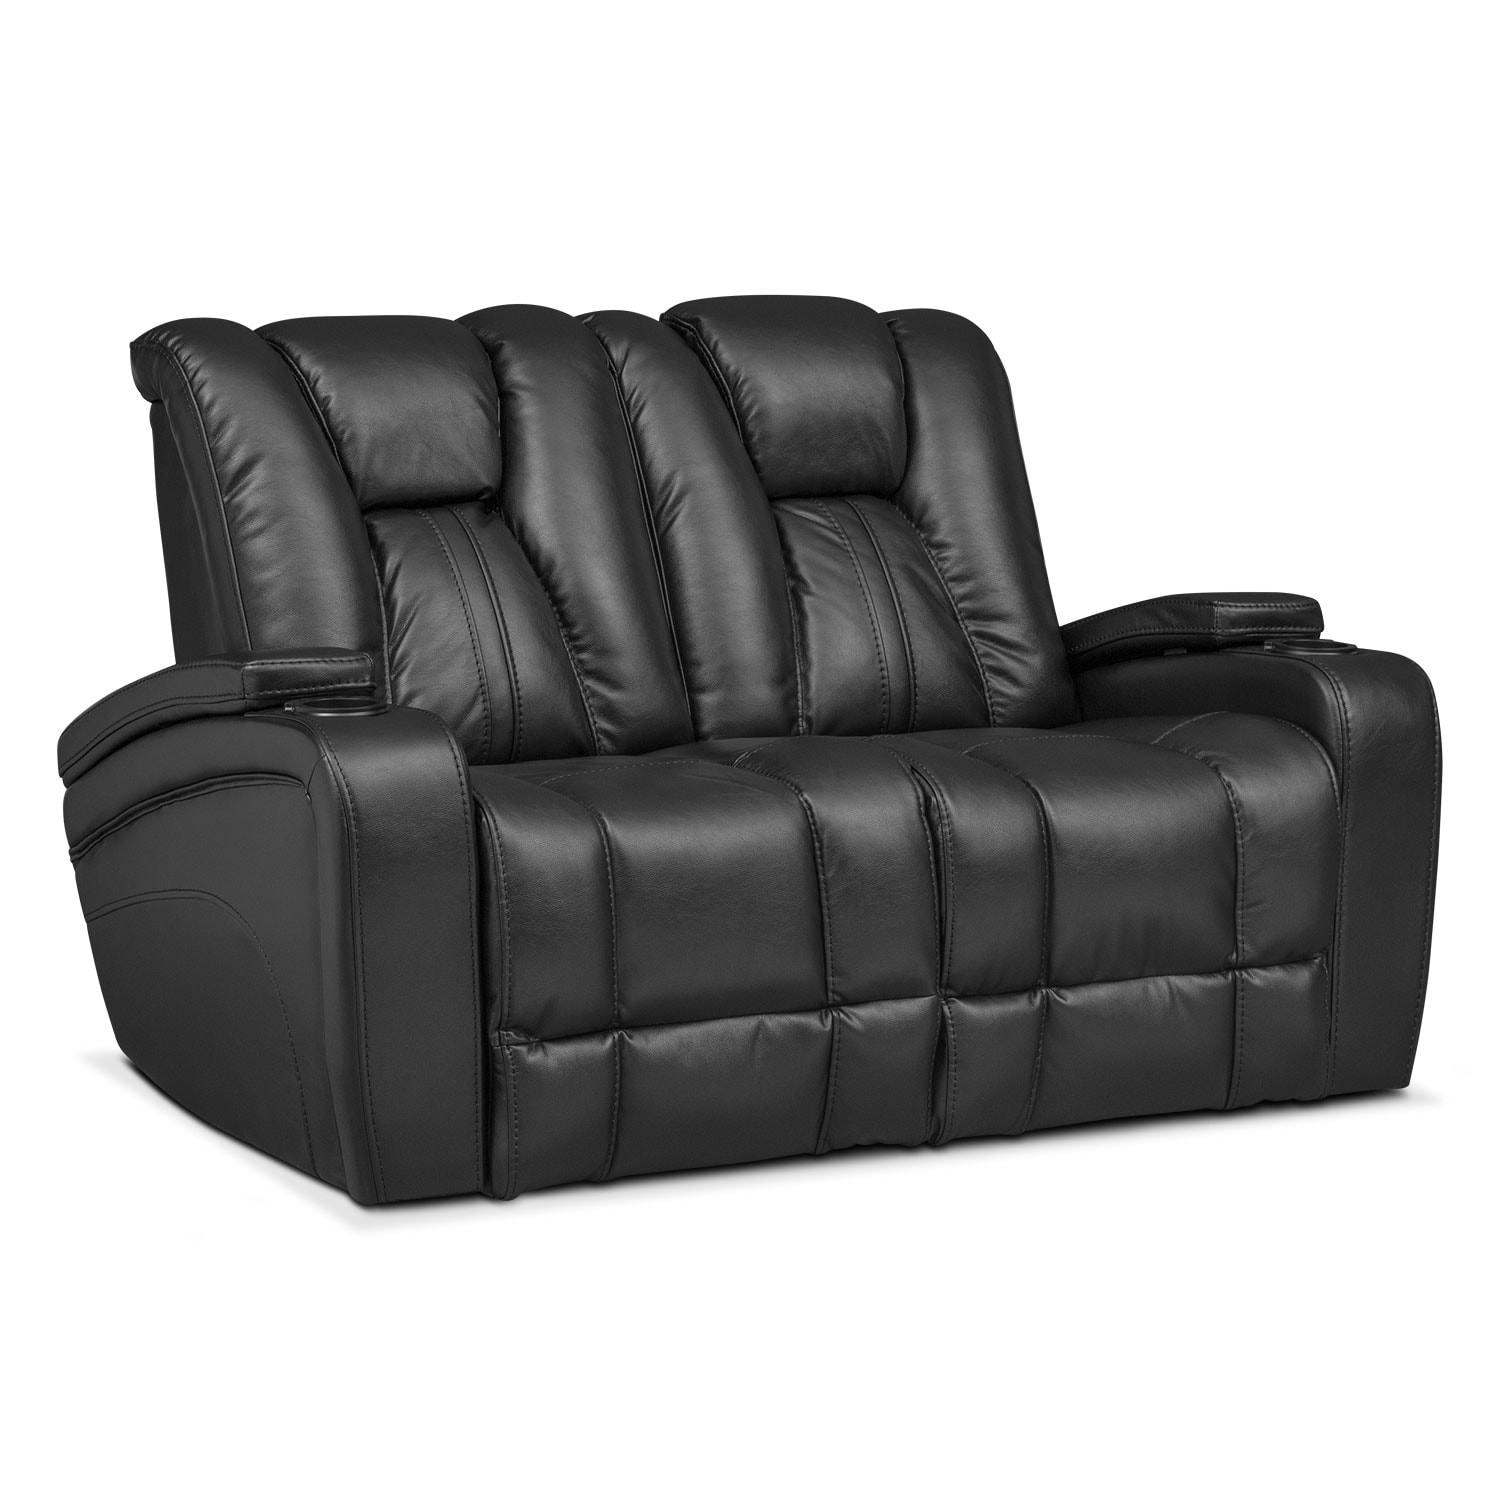 Pulsar power reclining sofa power reclining loveseat and power recliner set black american Couches and loveseats